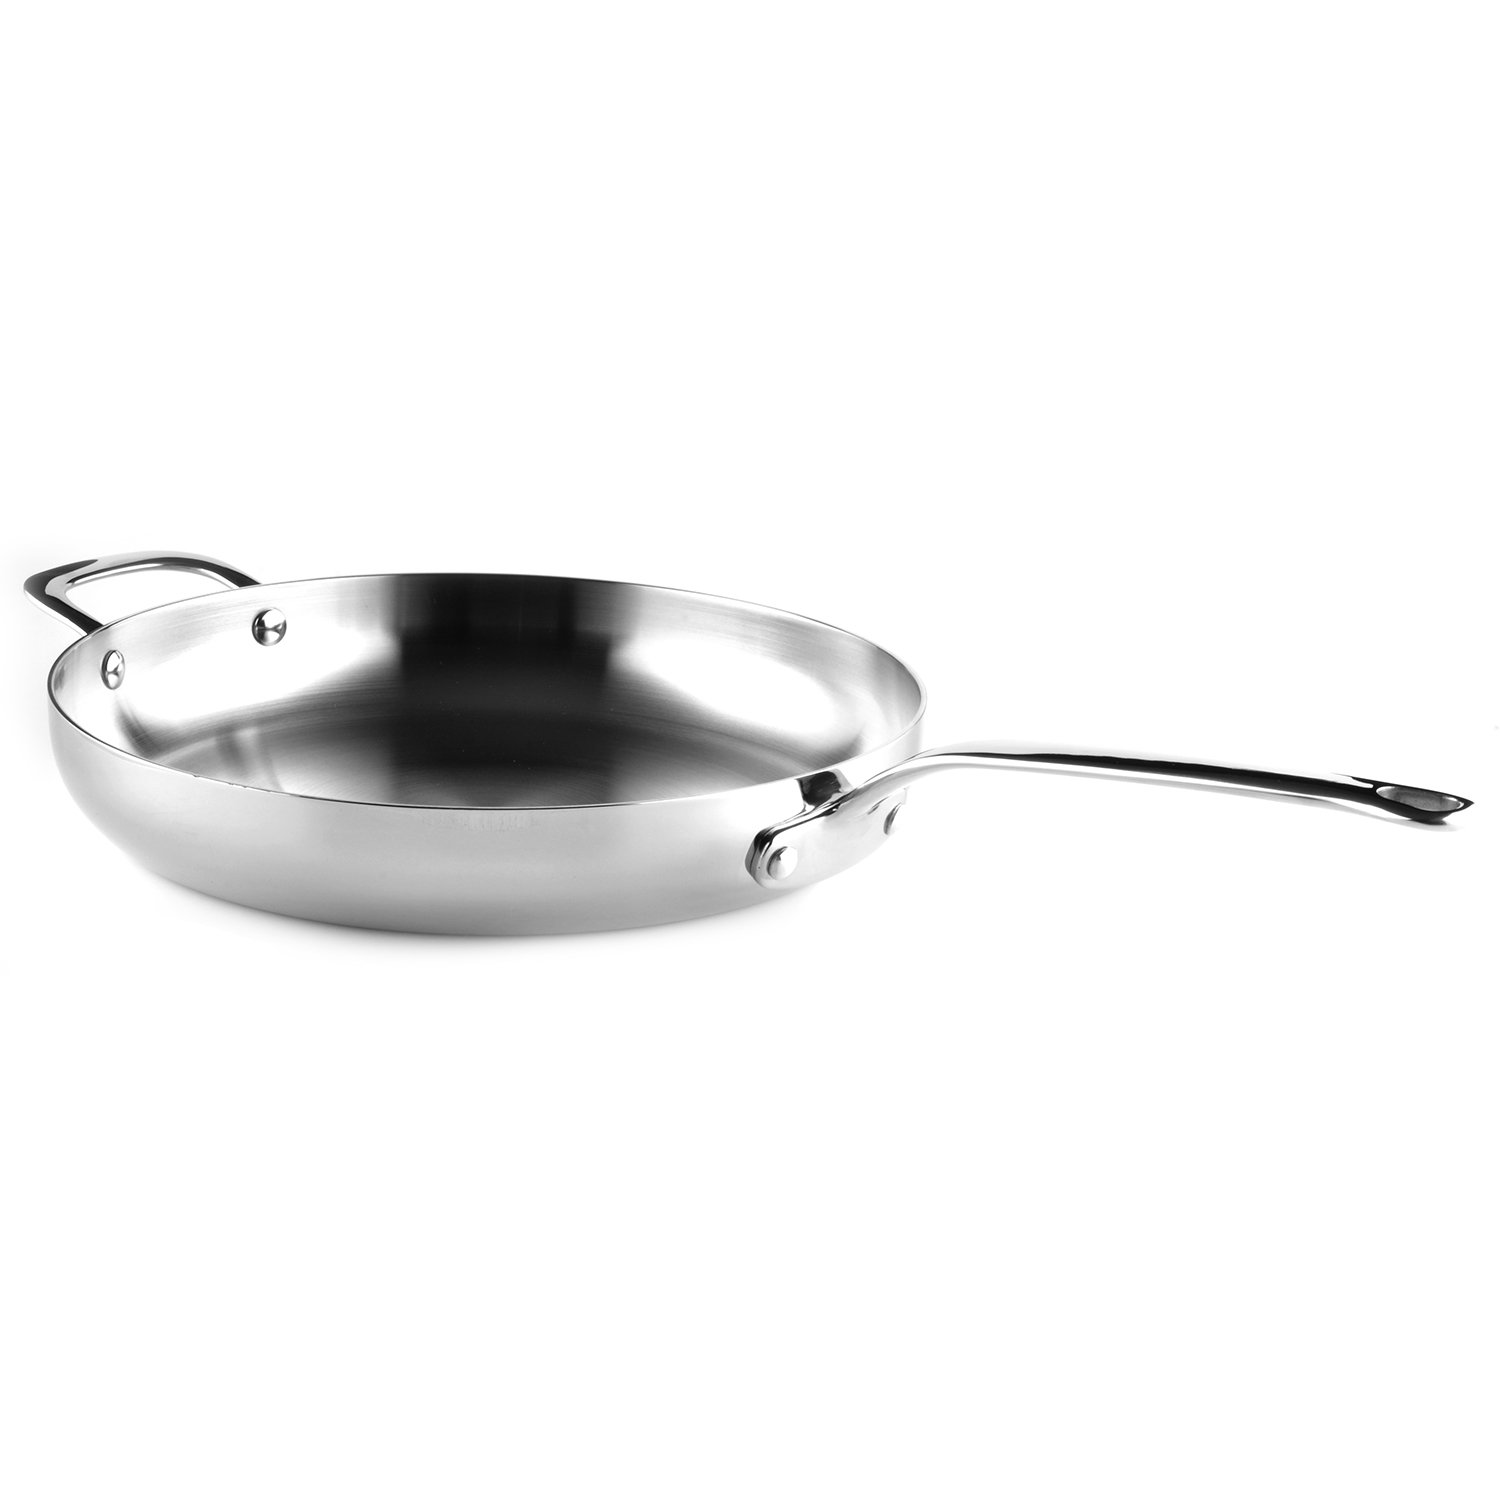 Saber Cookware Professional Grade 5-Ply Stainless Steel Skillet/Fry Pan, 12'', Silver